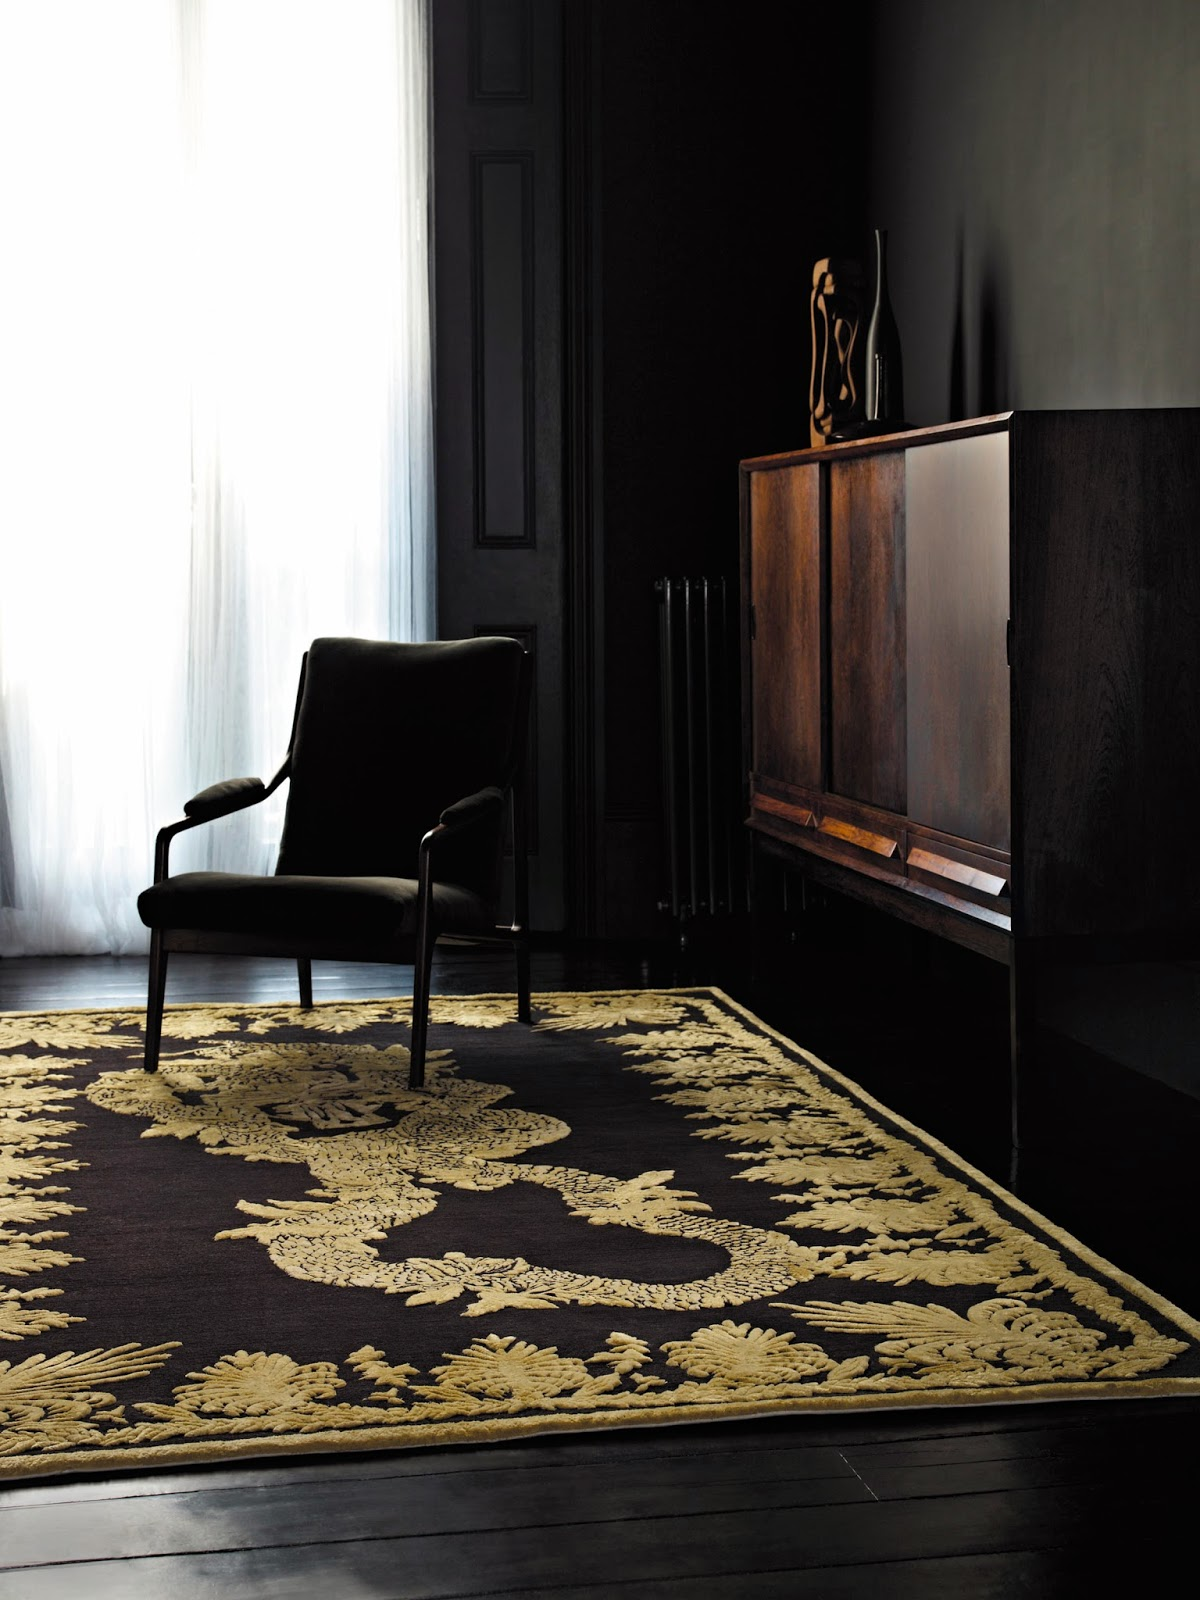 dc amq military brocade r Gorgeous carpets from The Rug Company